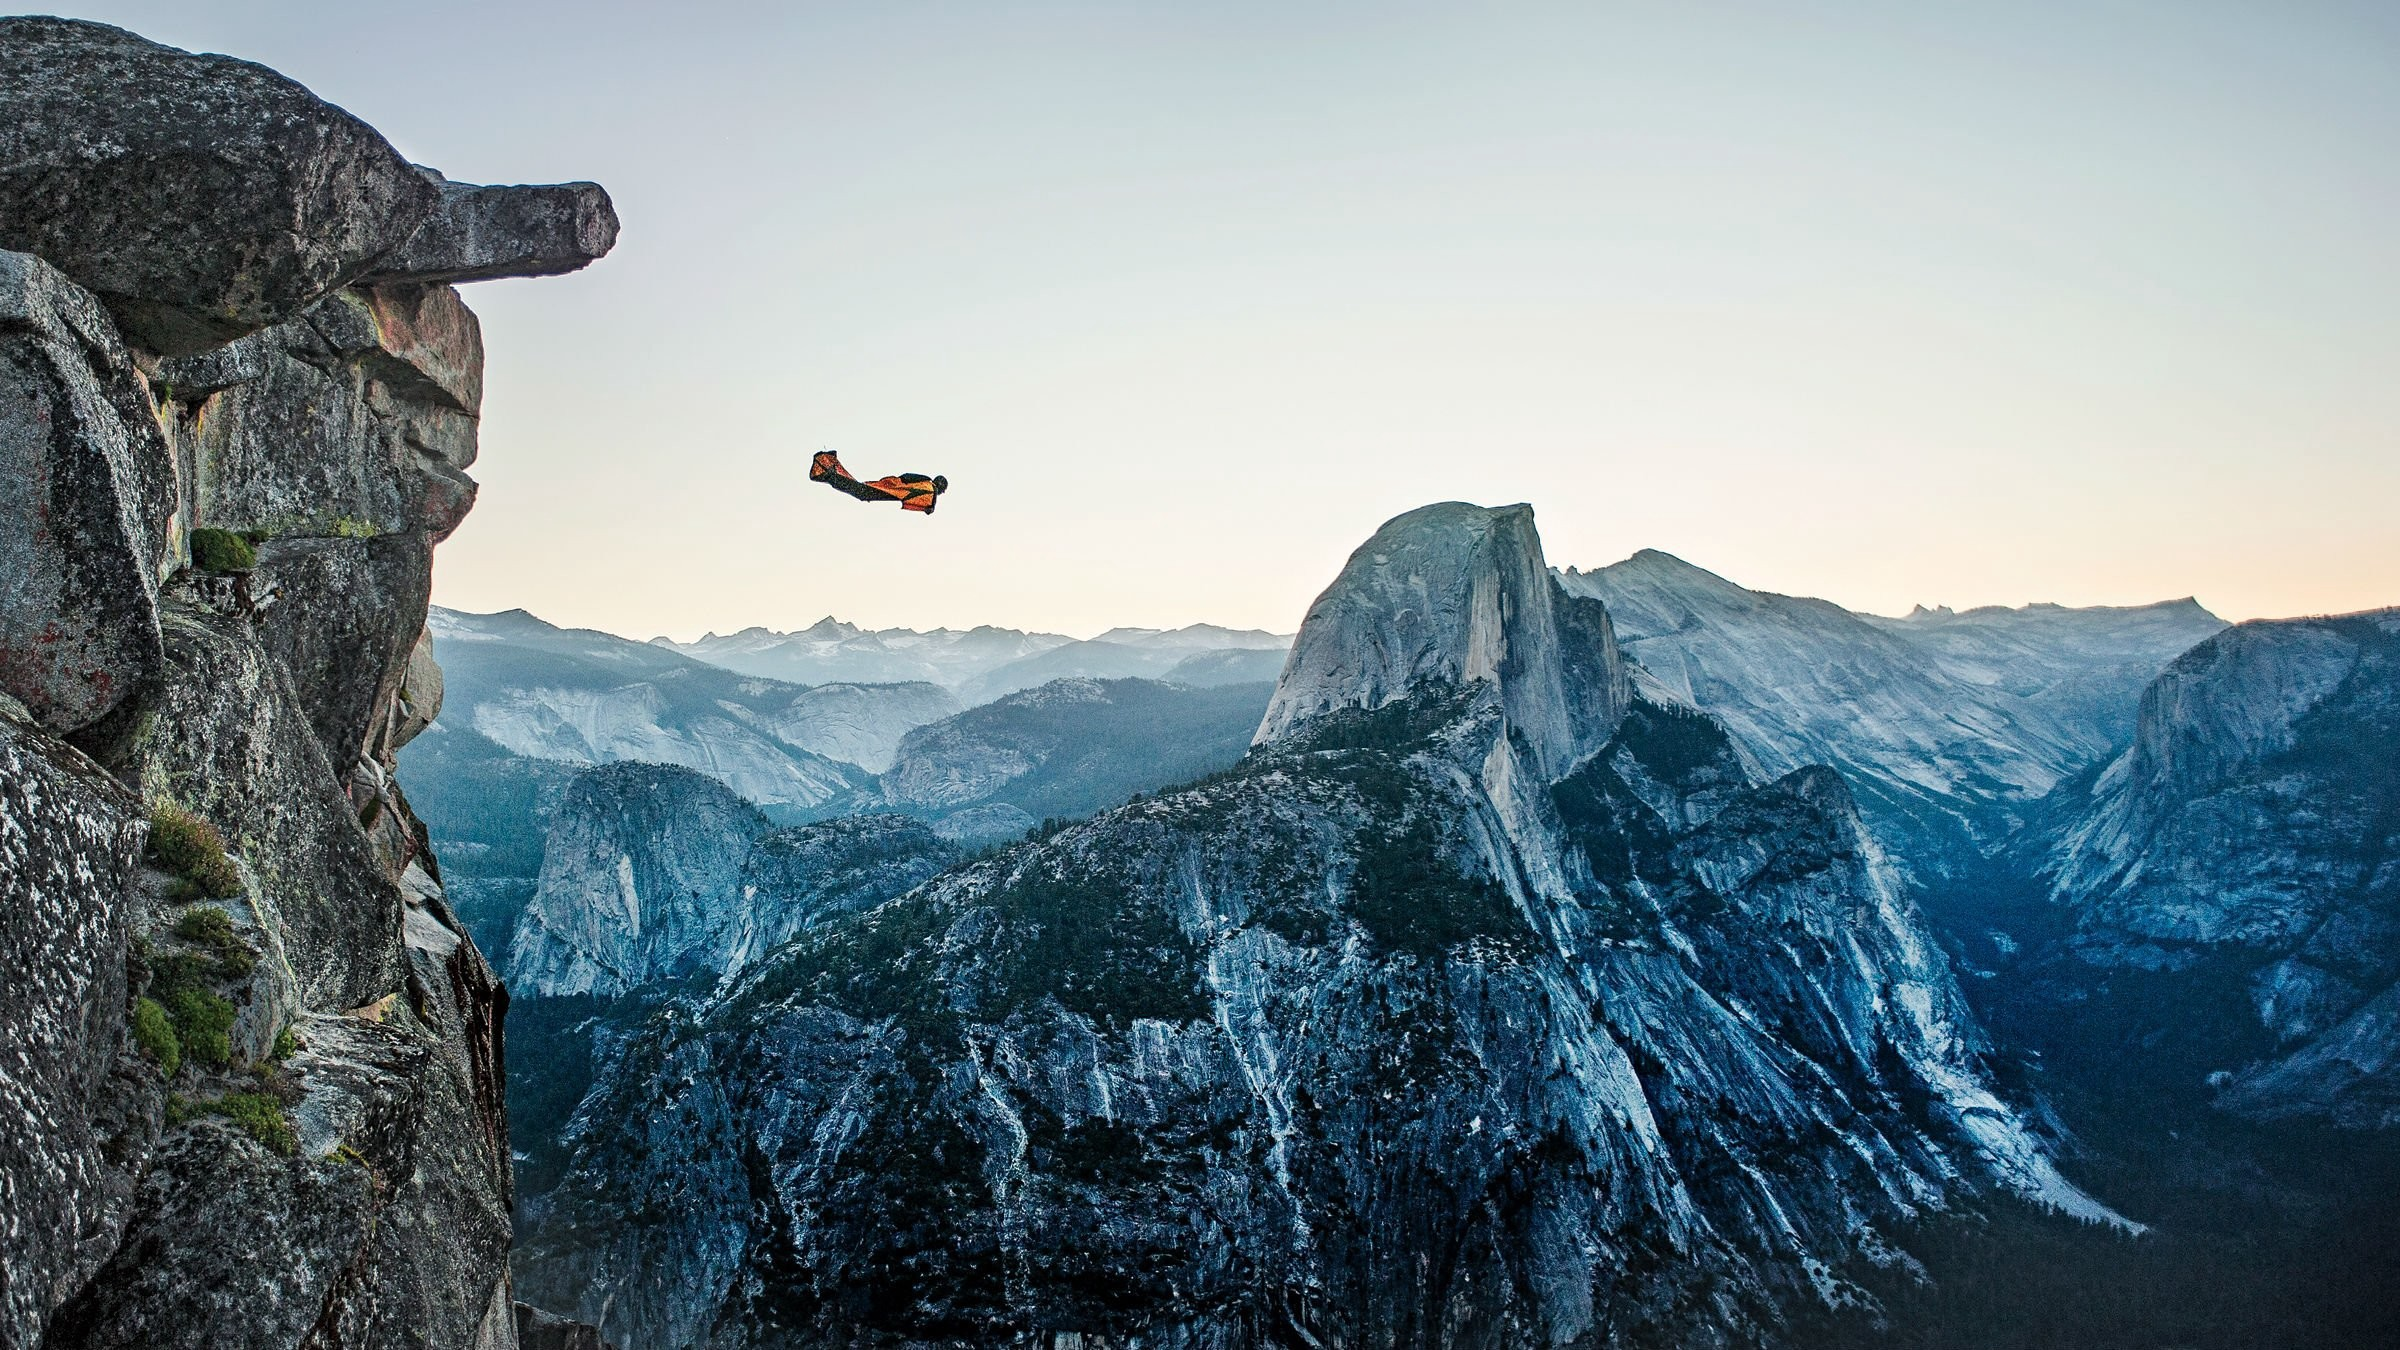 Wingsuit flyer taking off from a cliff